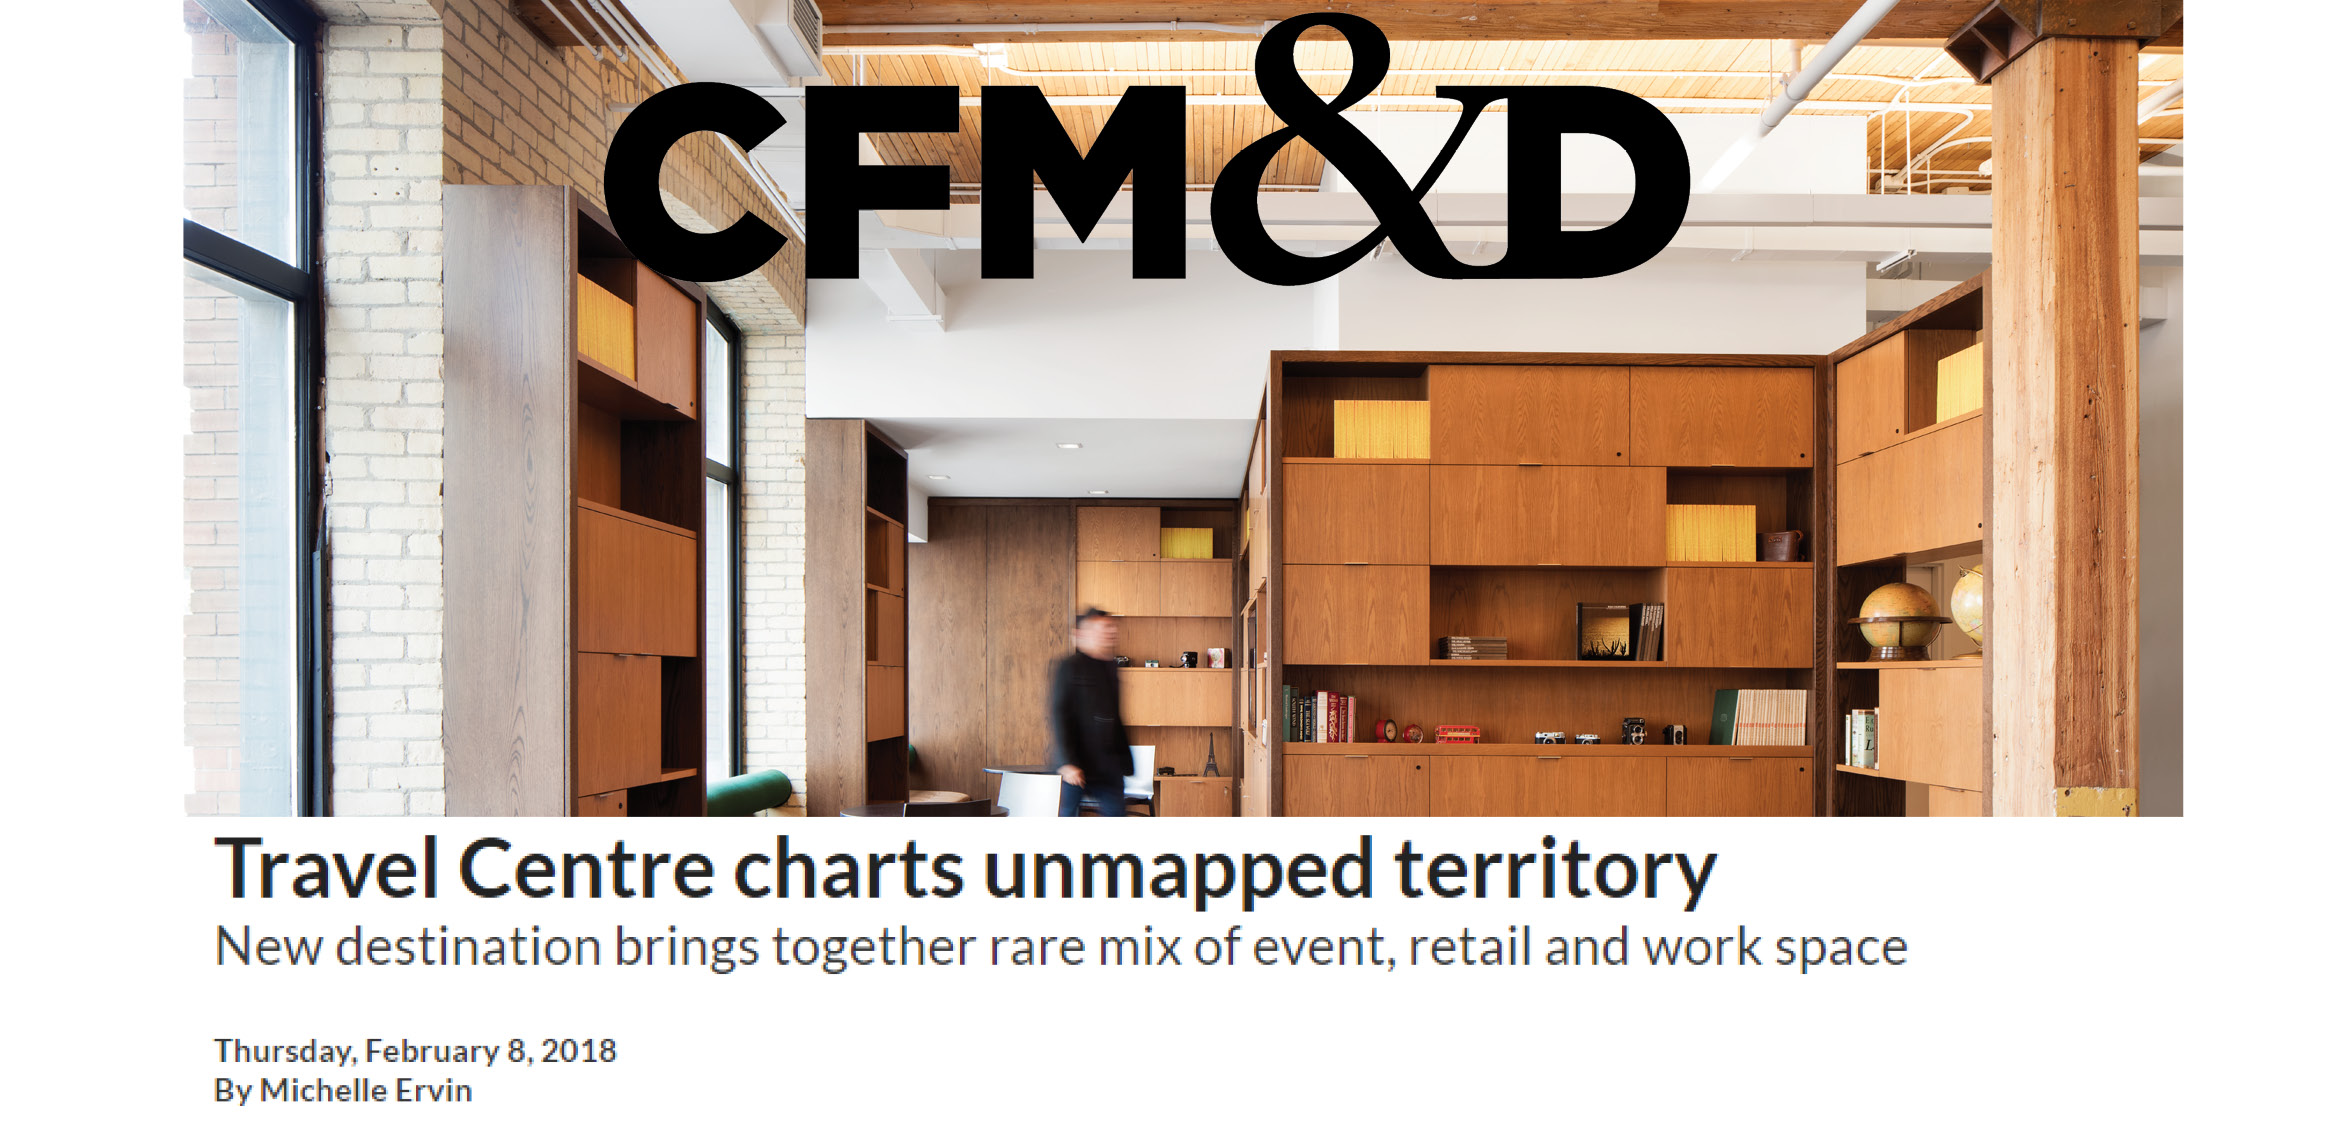 """the headline """"Travel Centre charts unmapped territory"""" and CFM&D logo overtop the brick and wood detailed event space of the Travel Centre"""